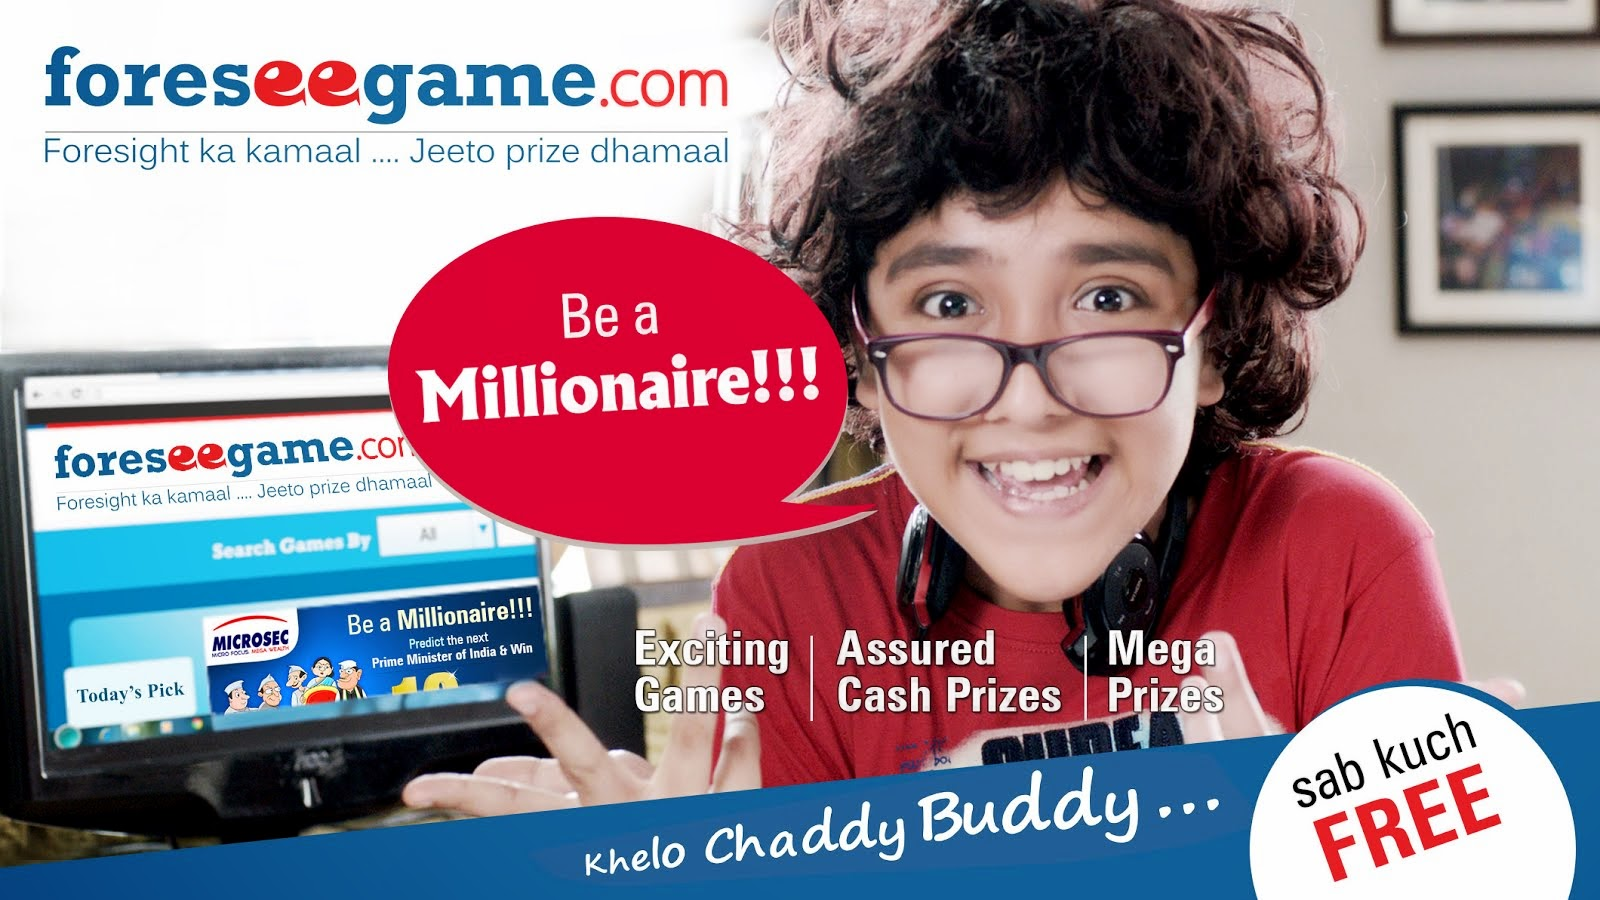 Win Cash Online : Play stock market games, cricket prediction games and win cash